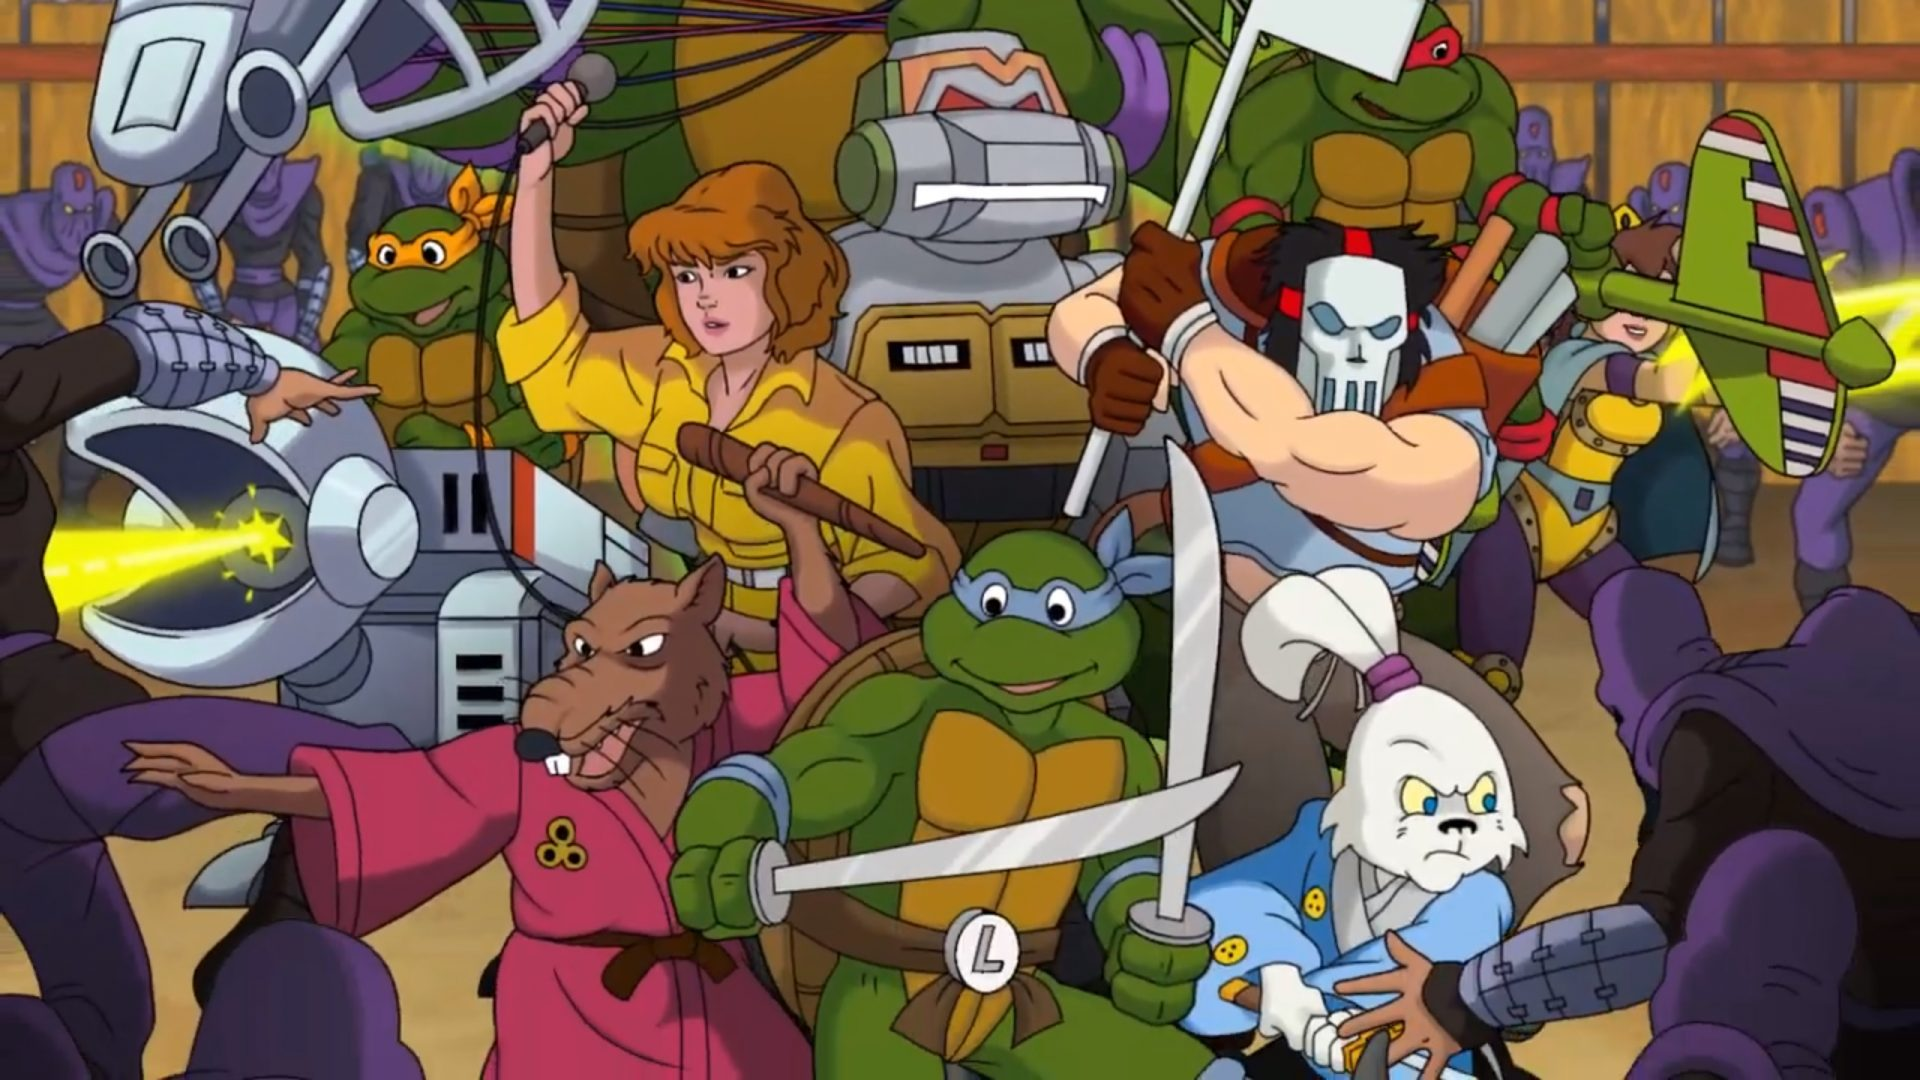 Teenage Mutant Ninja Turtles Rescue-Palooza is a free fan